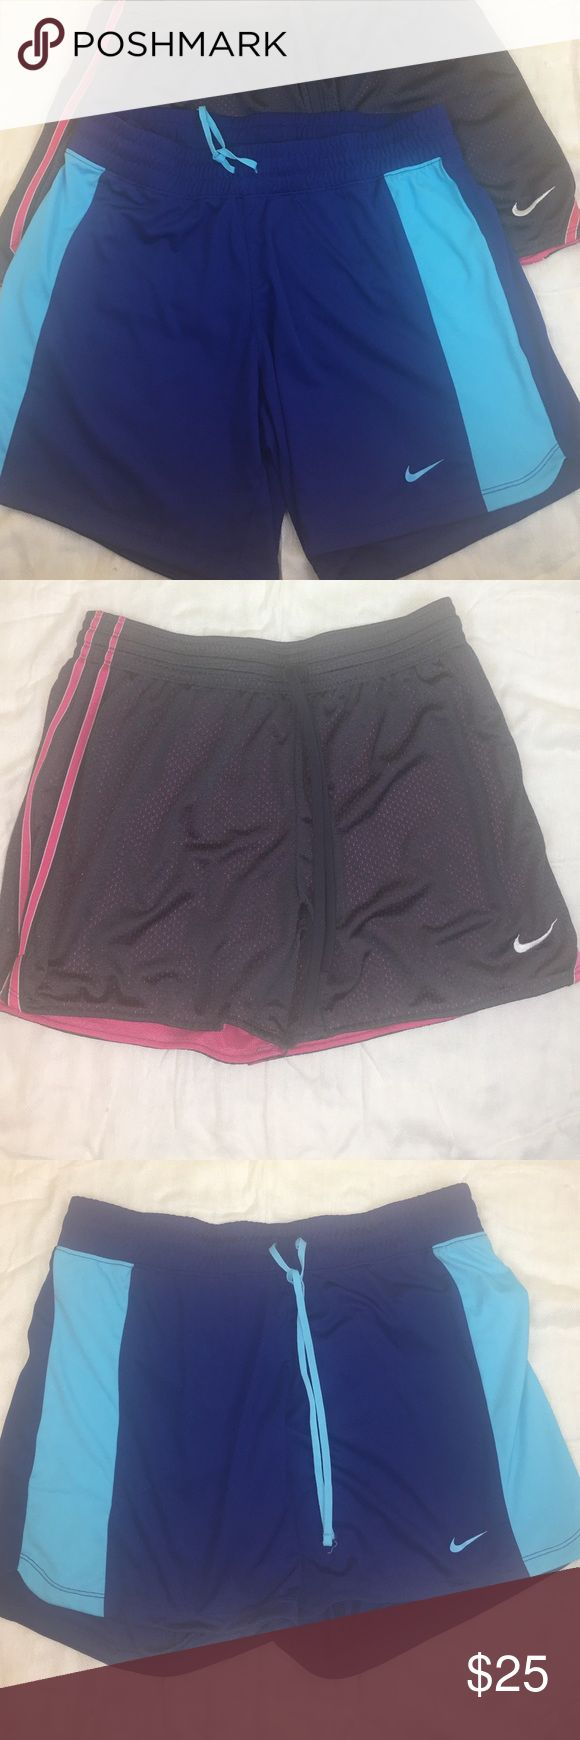 **2 Pair of Nike Dri Fit Shorts** MAKE ME AN OFFER 2 pair of Nike Dri Fit Shorts Nike Shorts